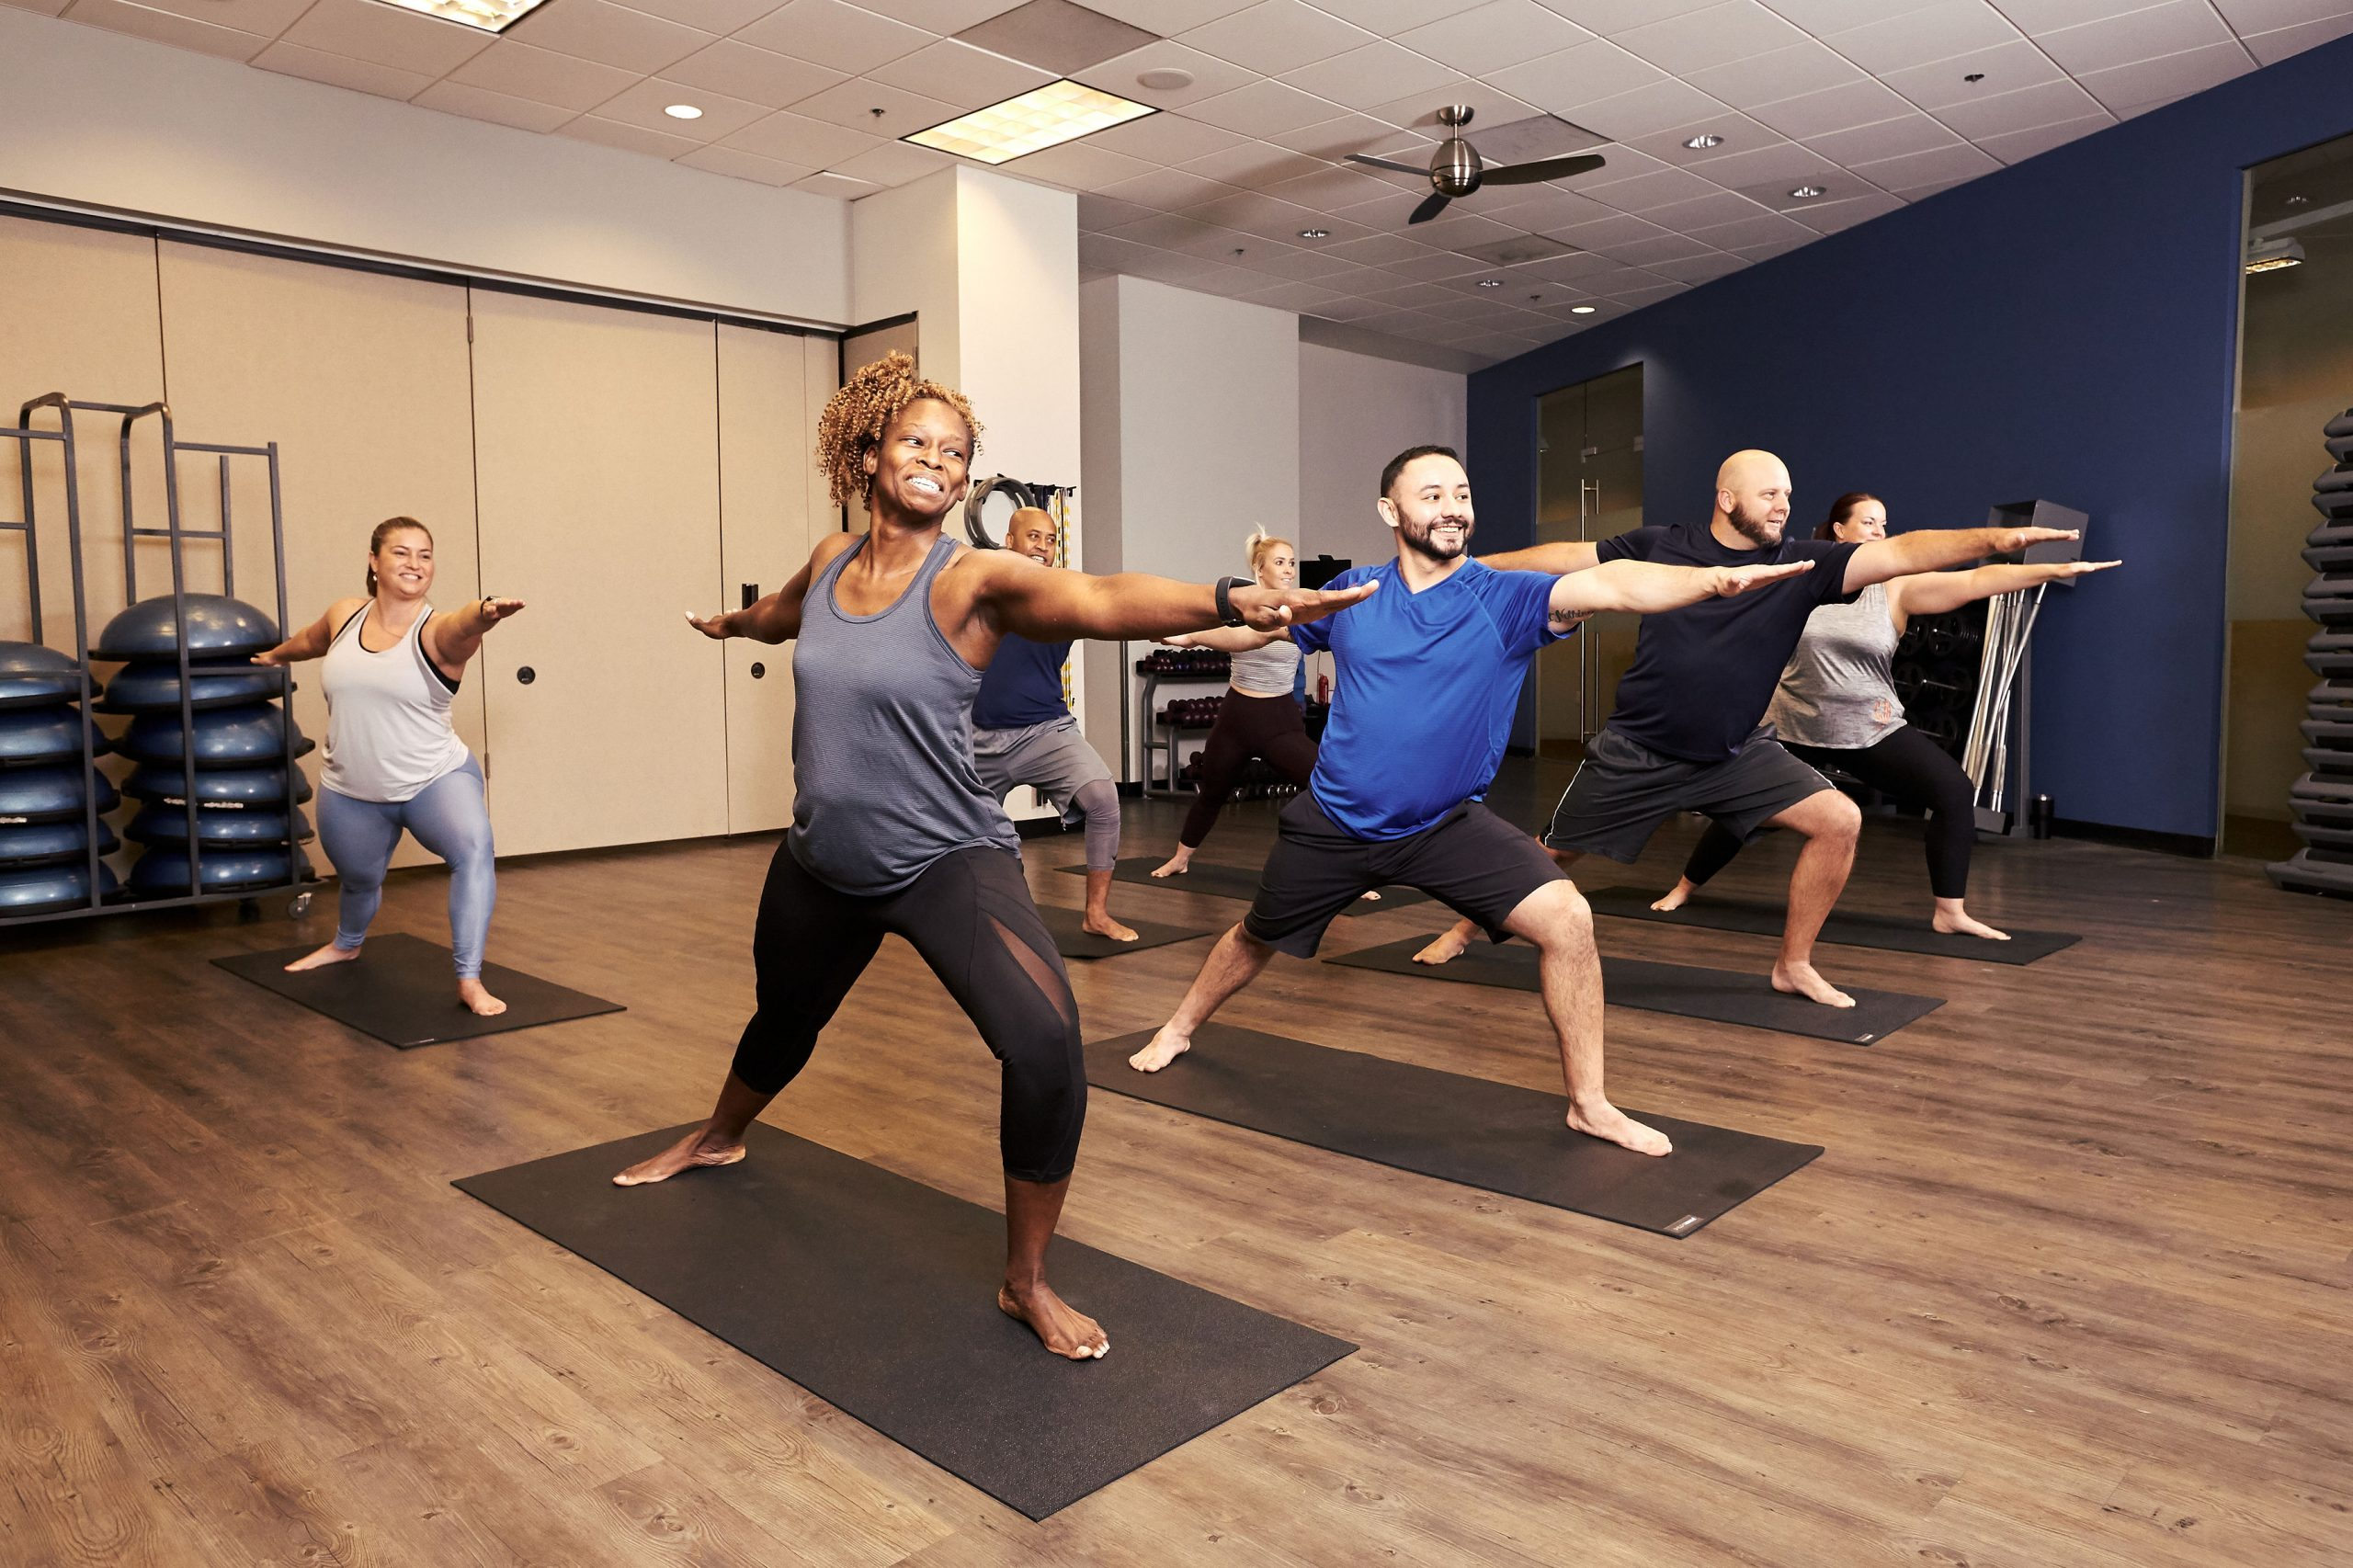 Group Workout Gym